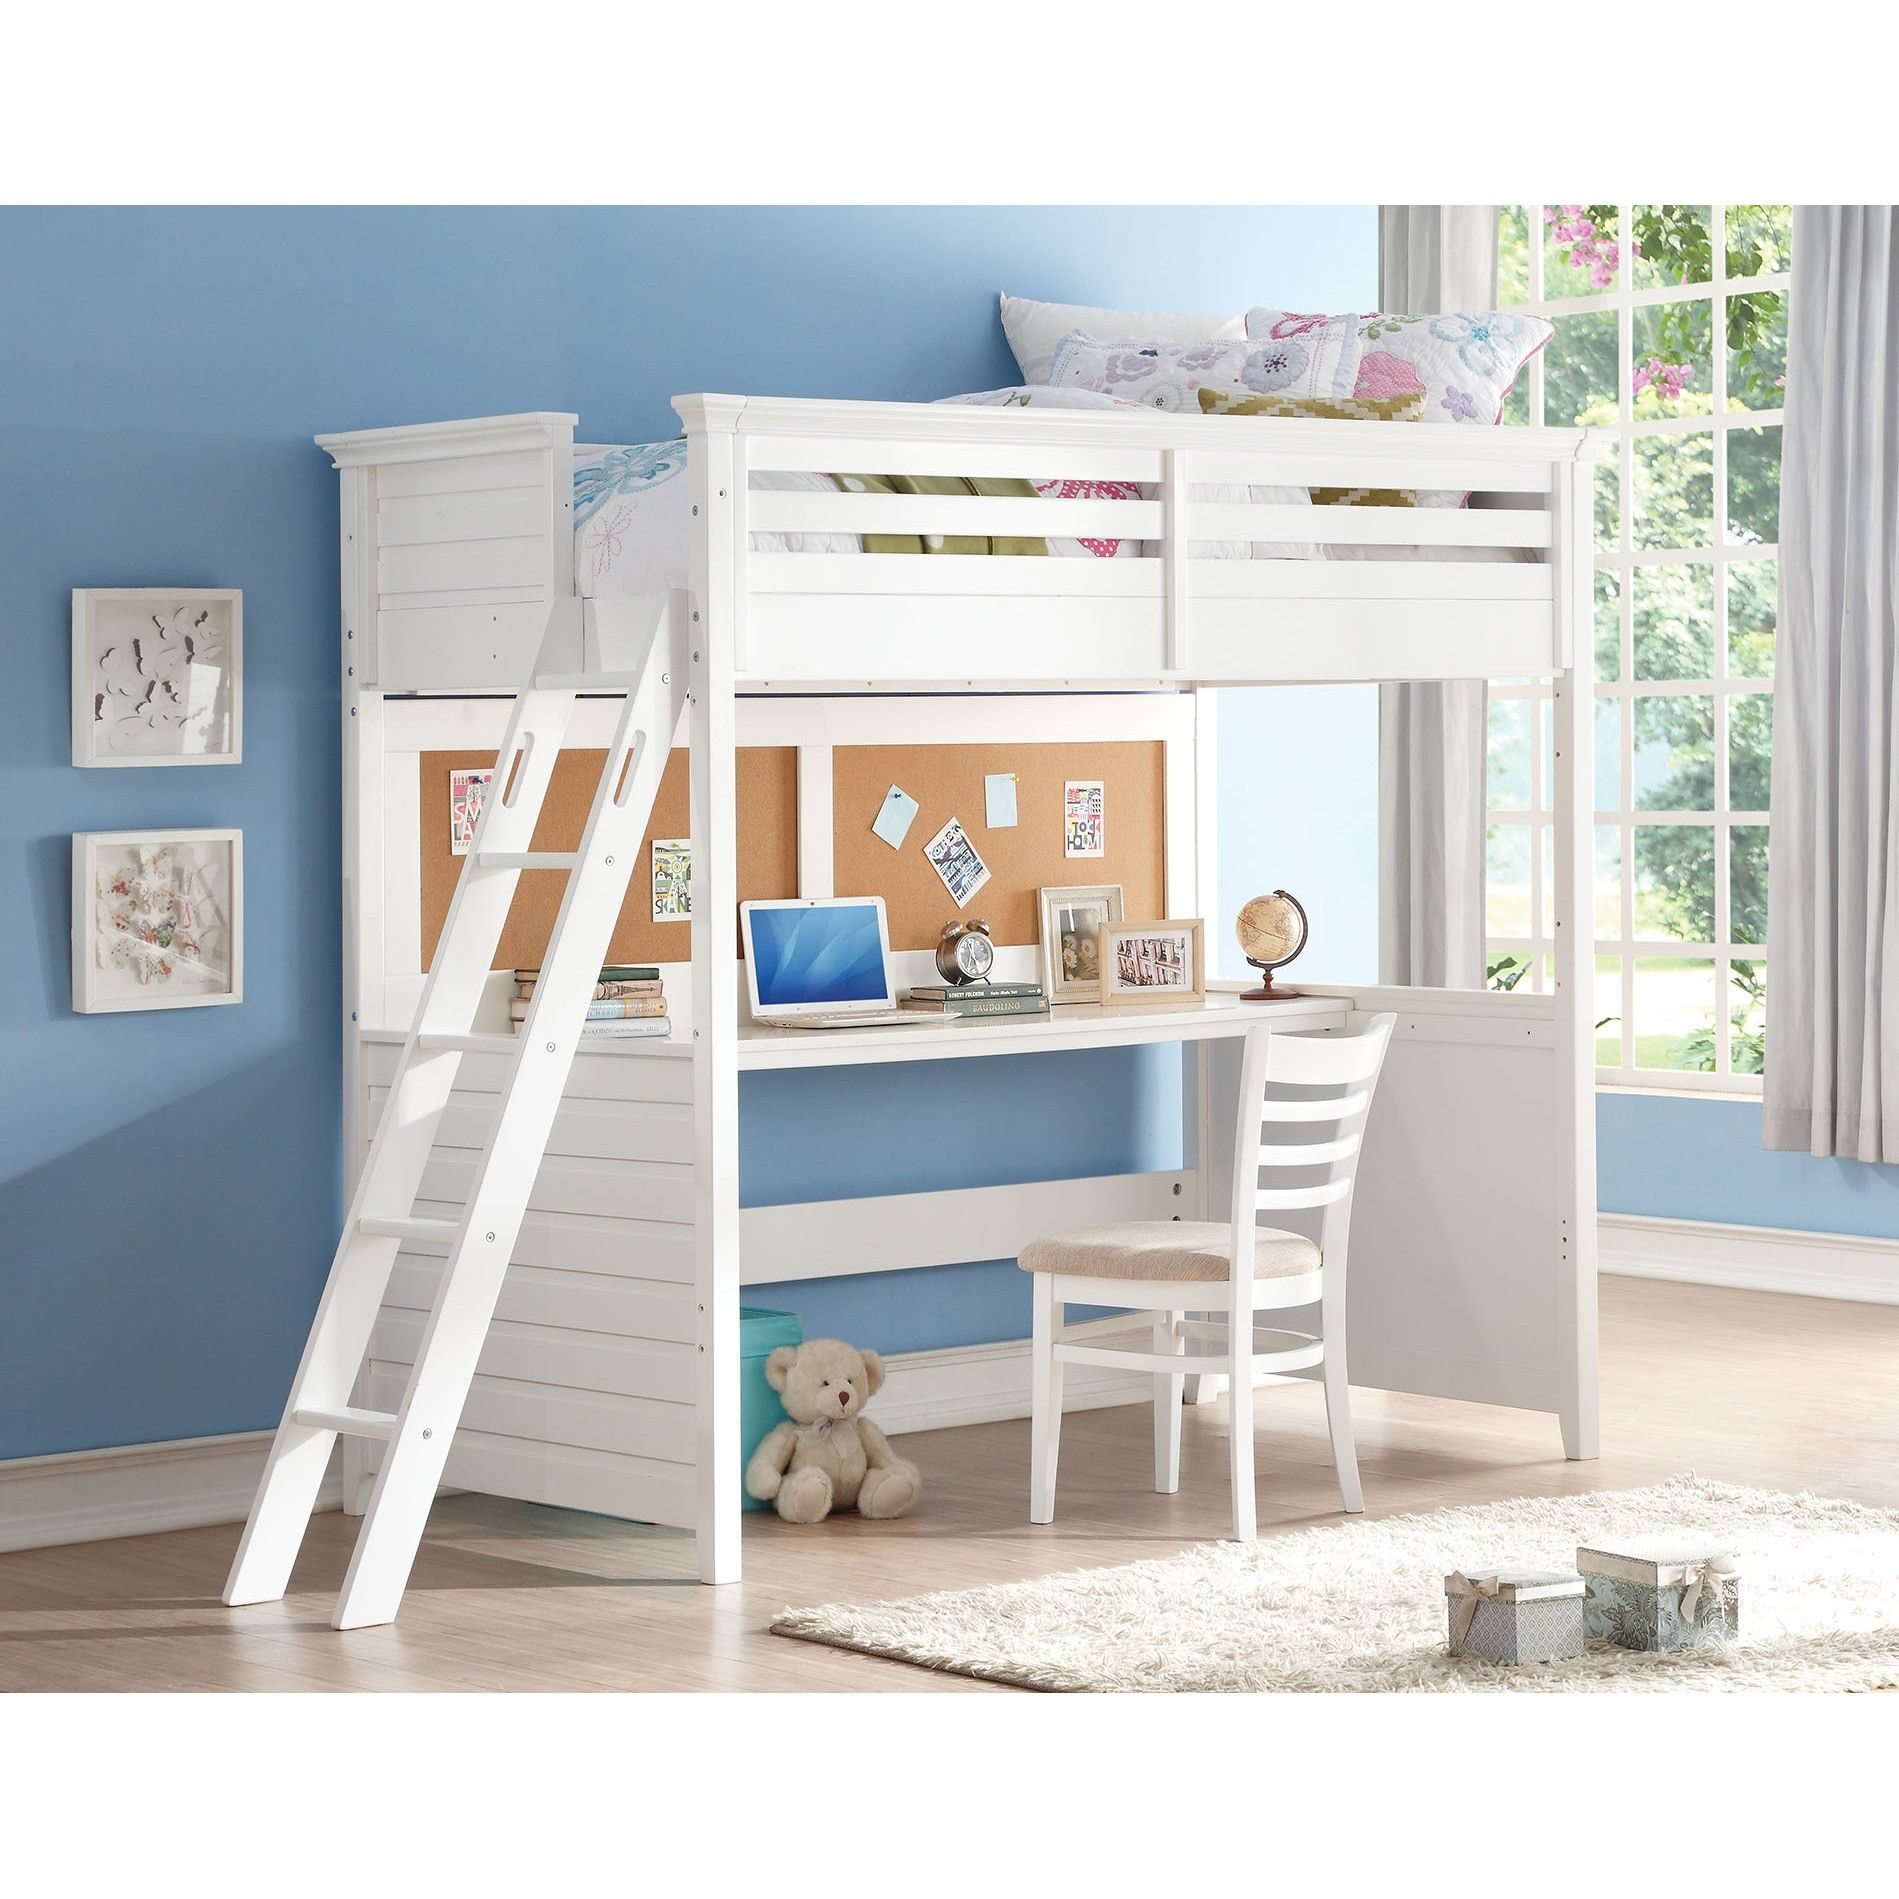 Best White Lacey Twin Loft Bed With Desk And Cork Board Twin 640 x 480